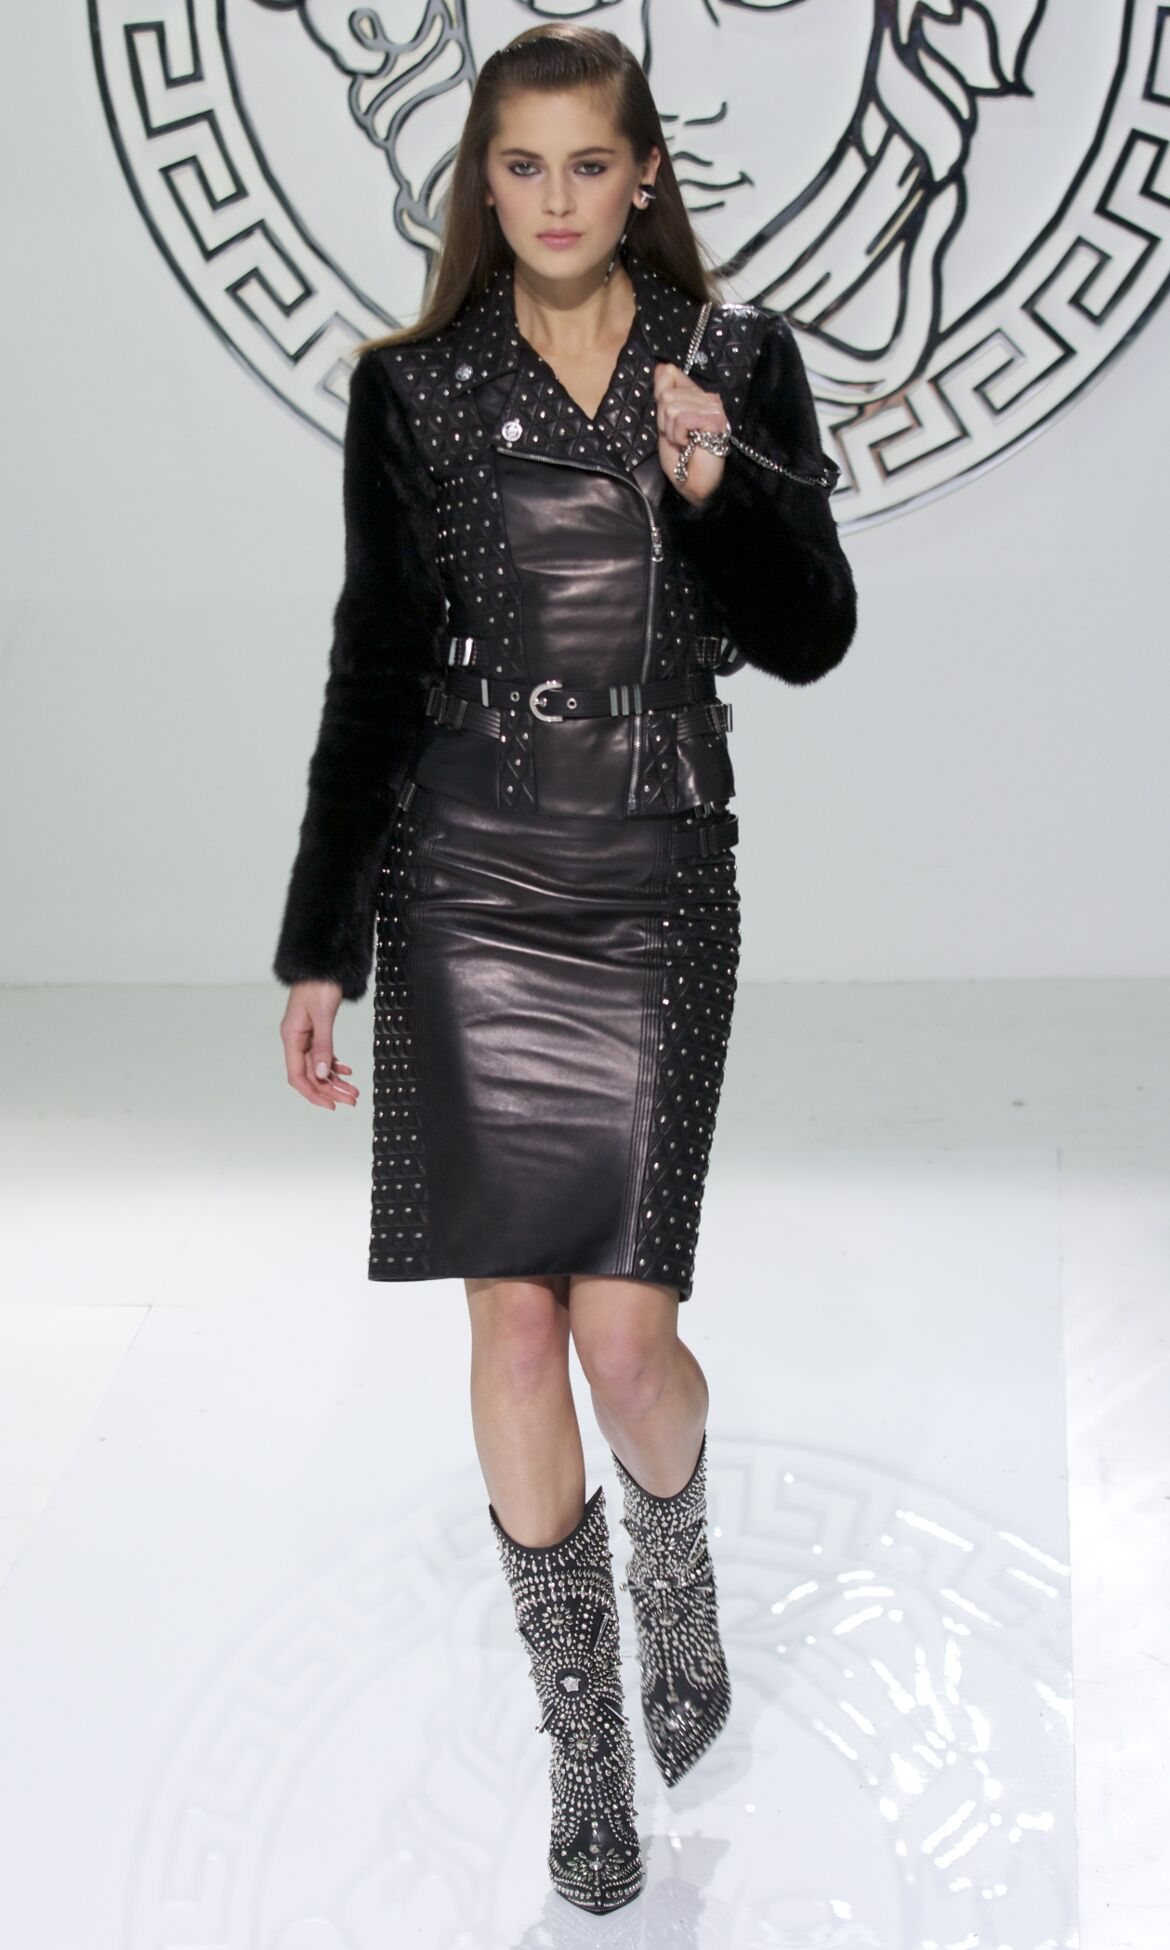 Fall winter 2013 fashion trends for women - Winter 2013 Woman Versace Fall 2013 Fashion Trends Versace